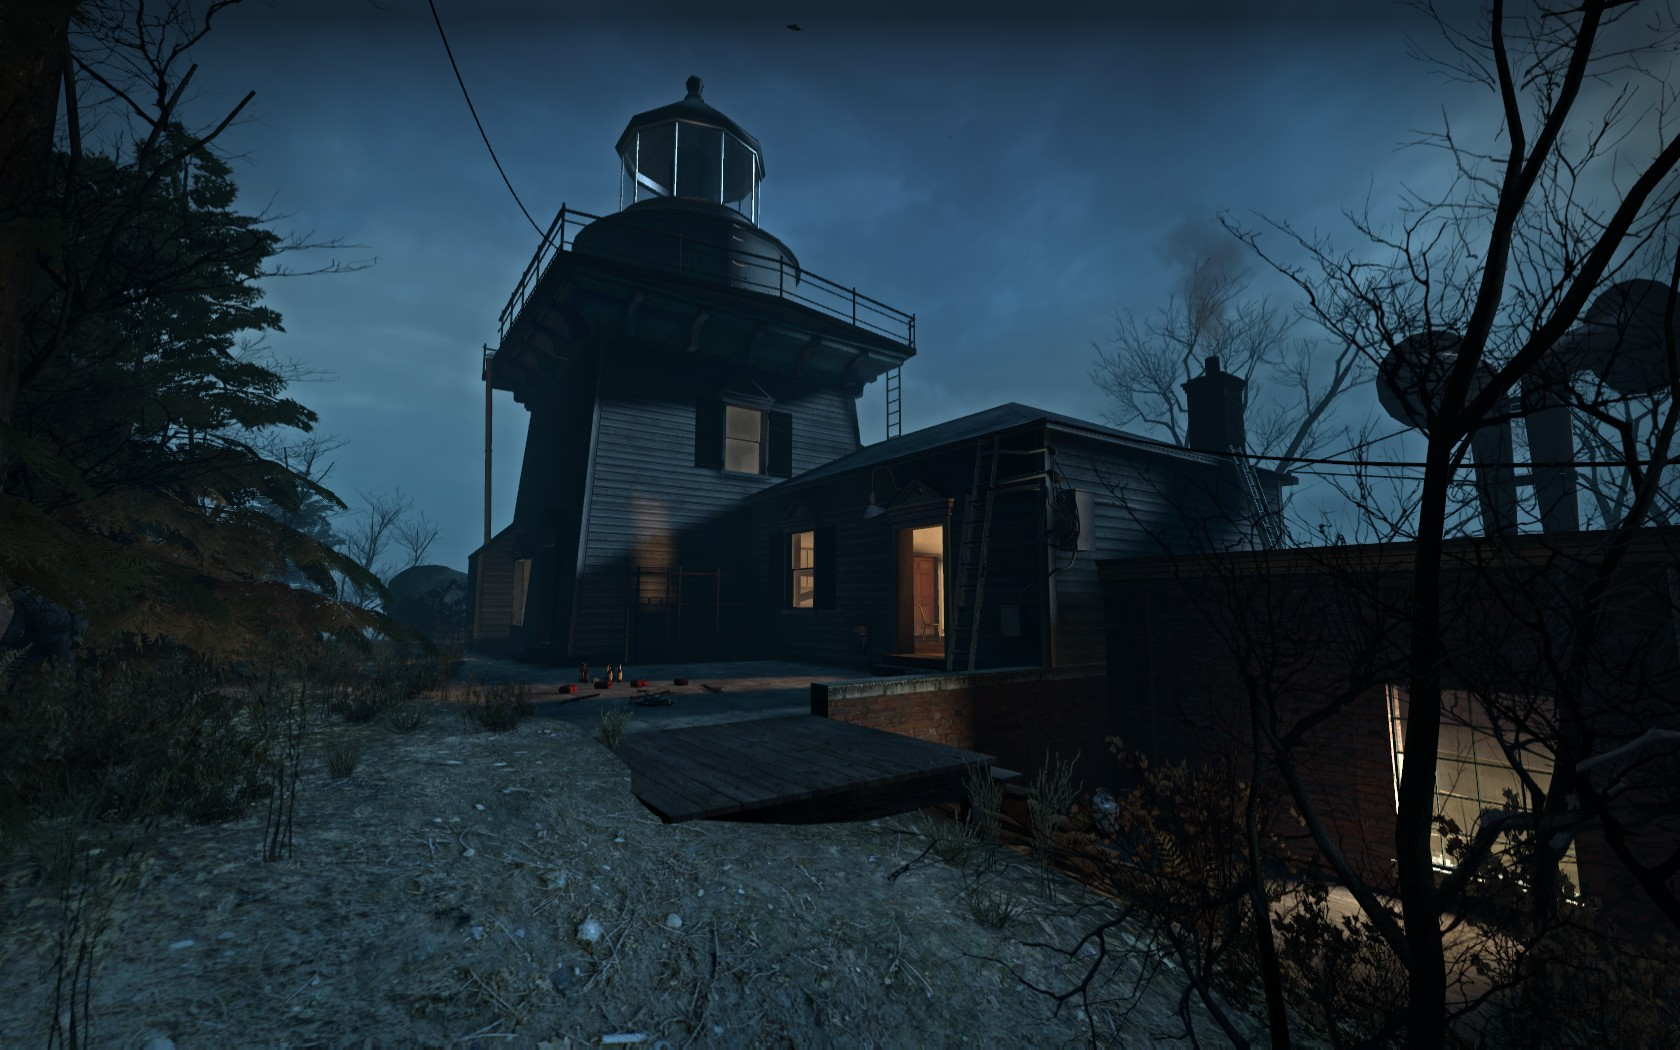 L4d sv lighthouse0064.png